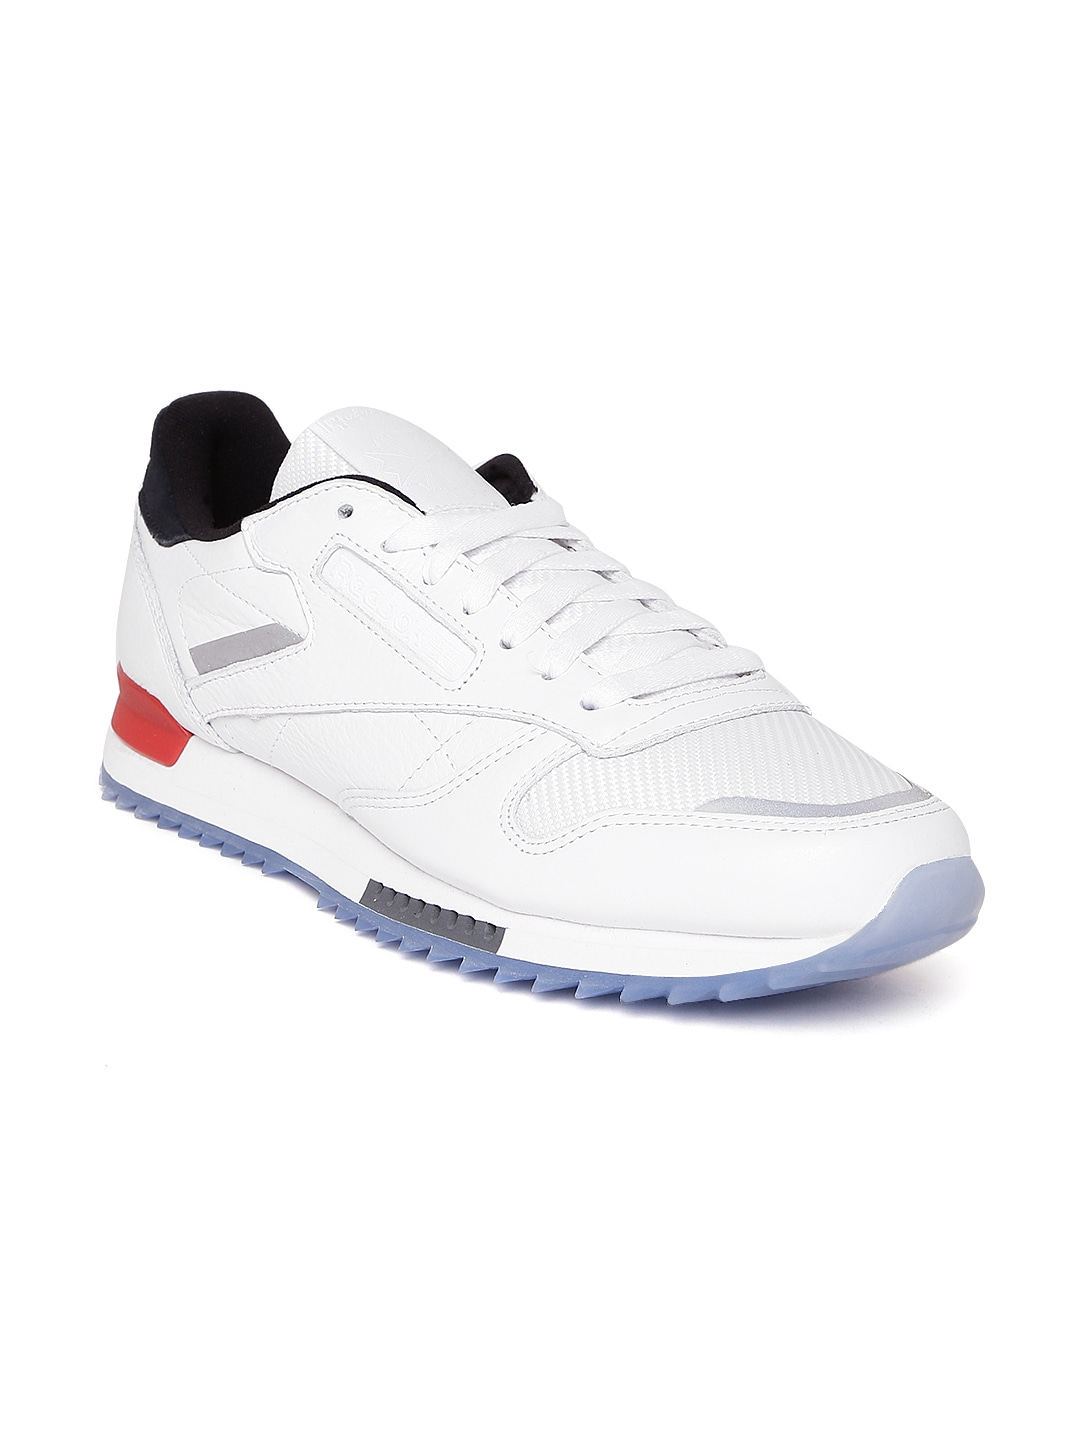 Buy Reebok Classic Men Grey CL Leather ALR Sneakers - Casual Shoes ... 7cc56df49